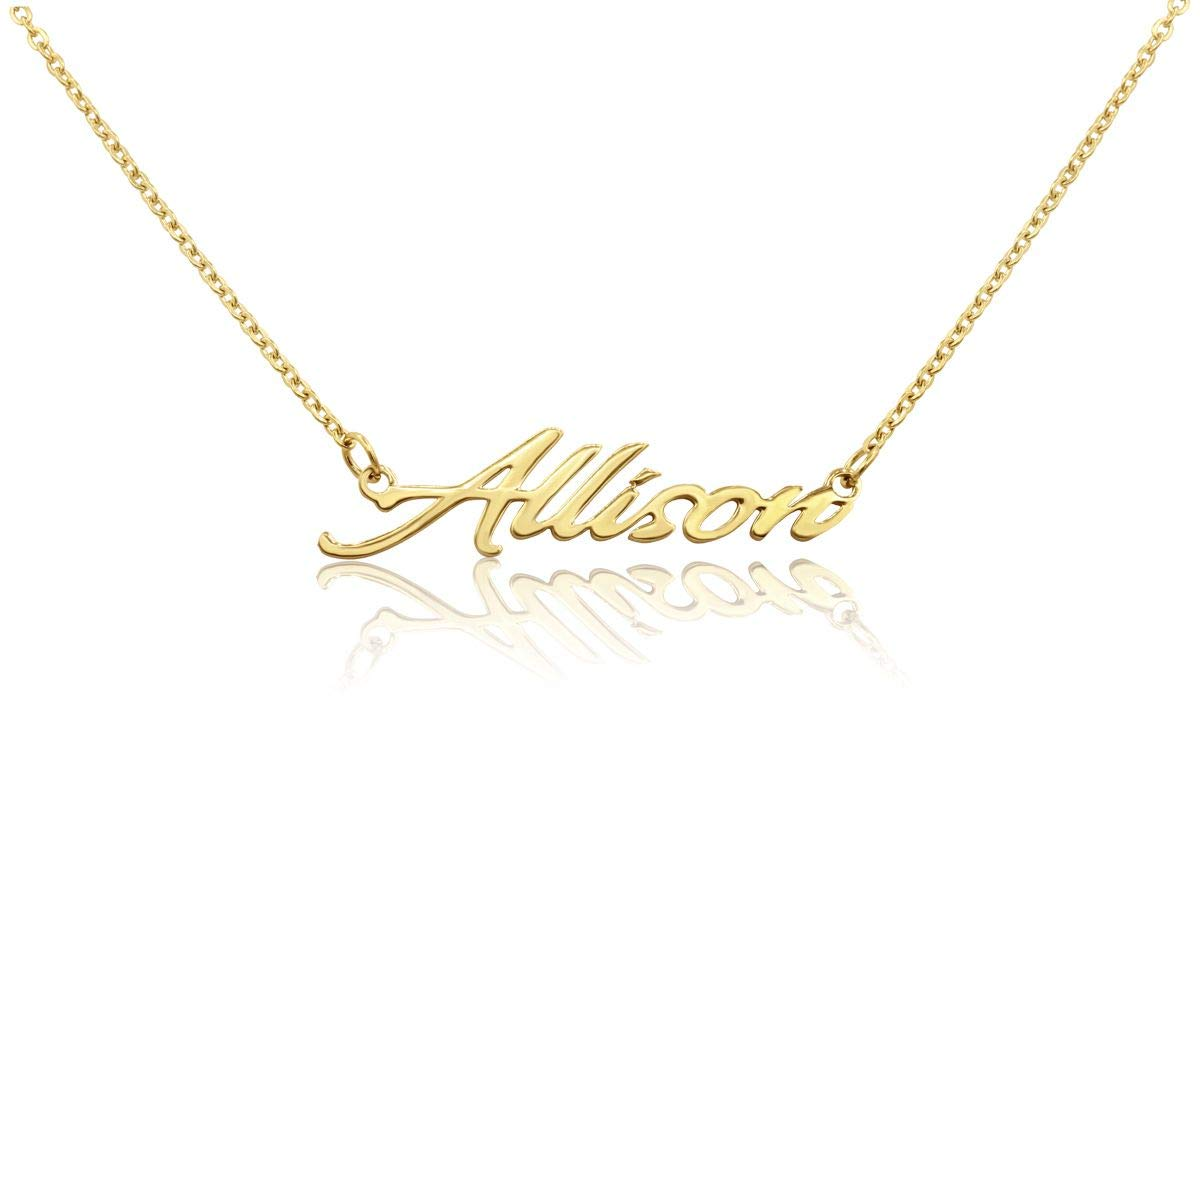 Beam Reach Personalized Name Necklace Pendant in Gold Tone 100 Names Available for Immediate Purchase!